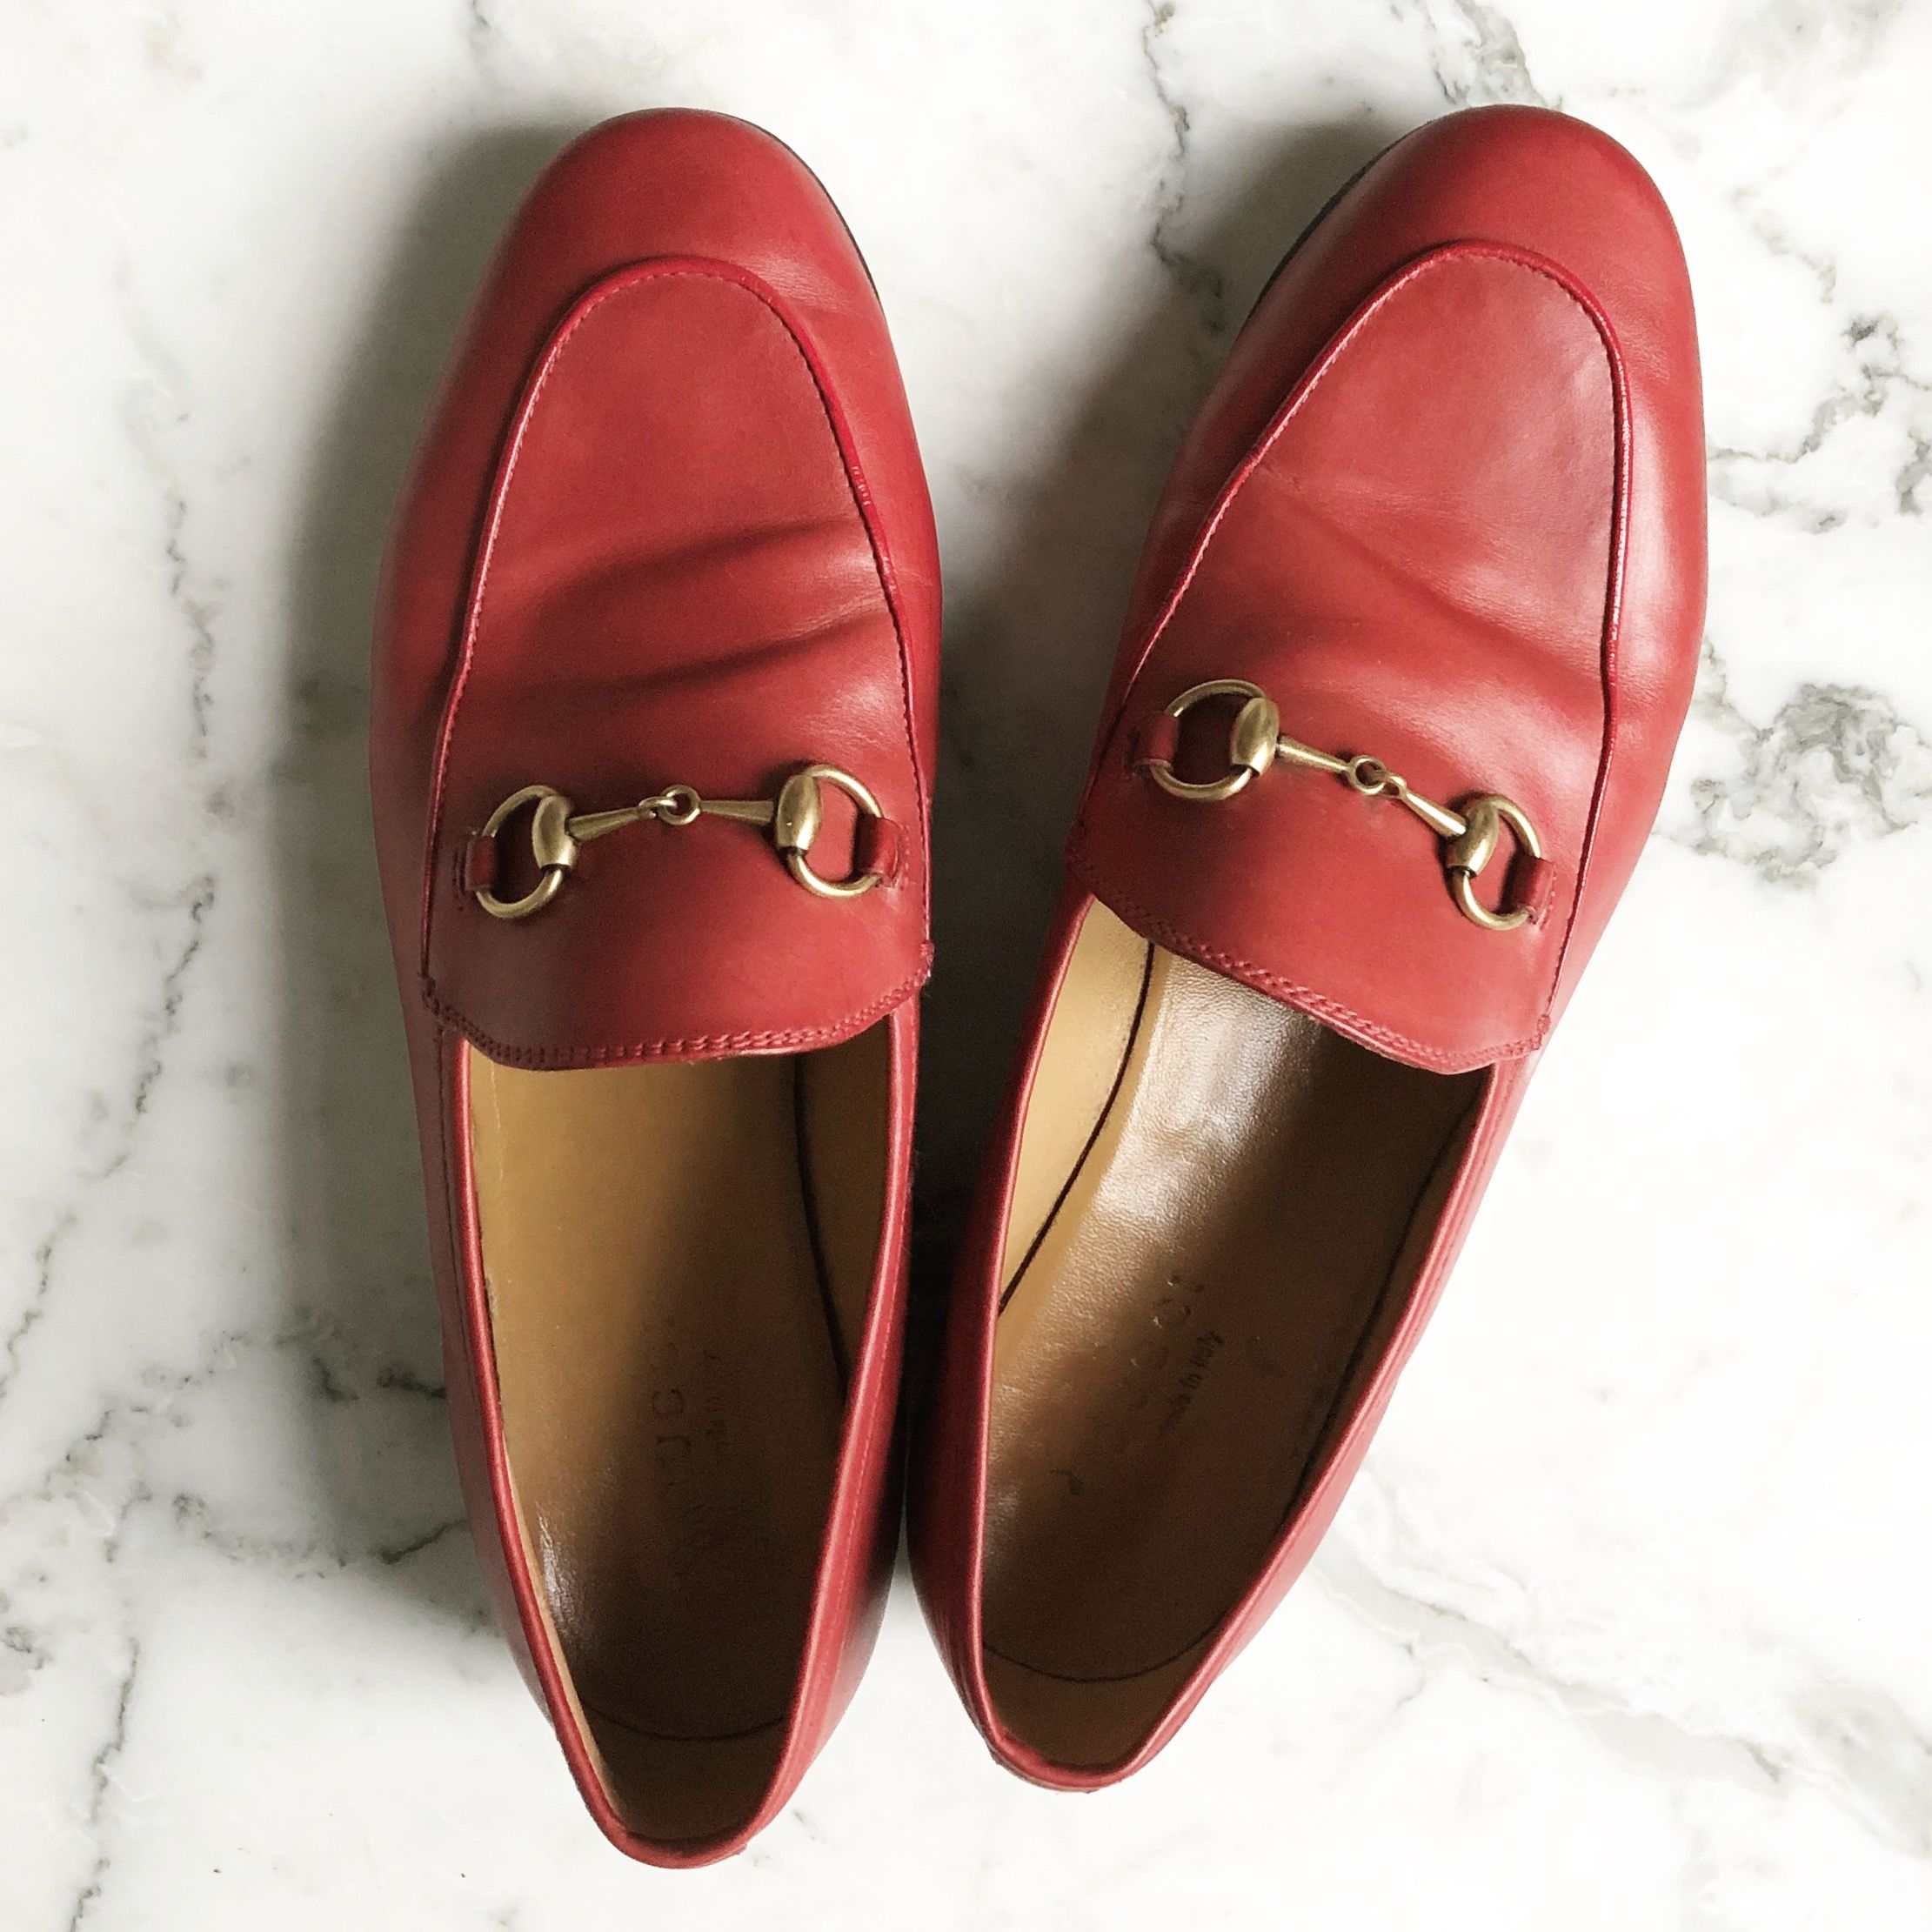 Gucci Jordaan loafers red StylingStories